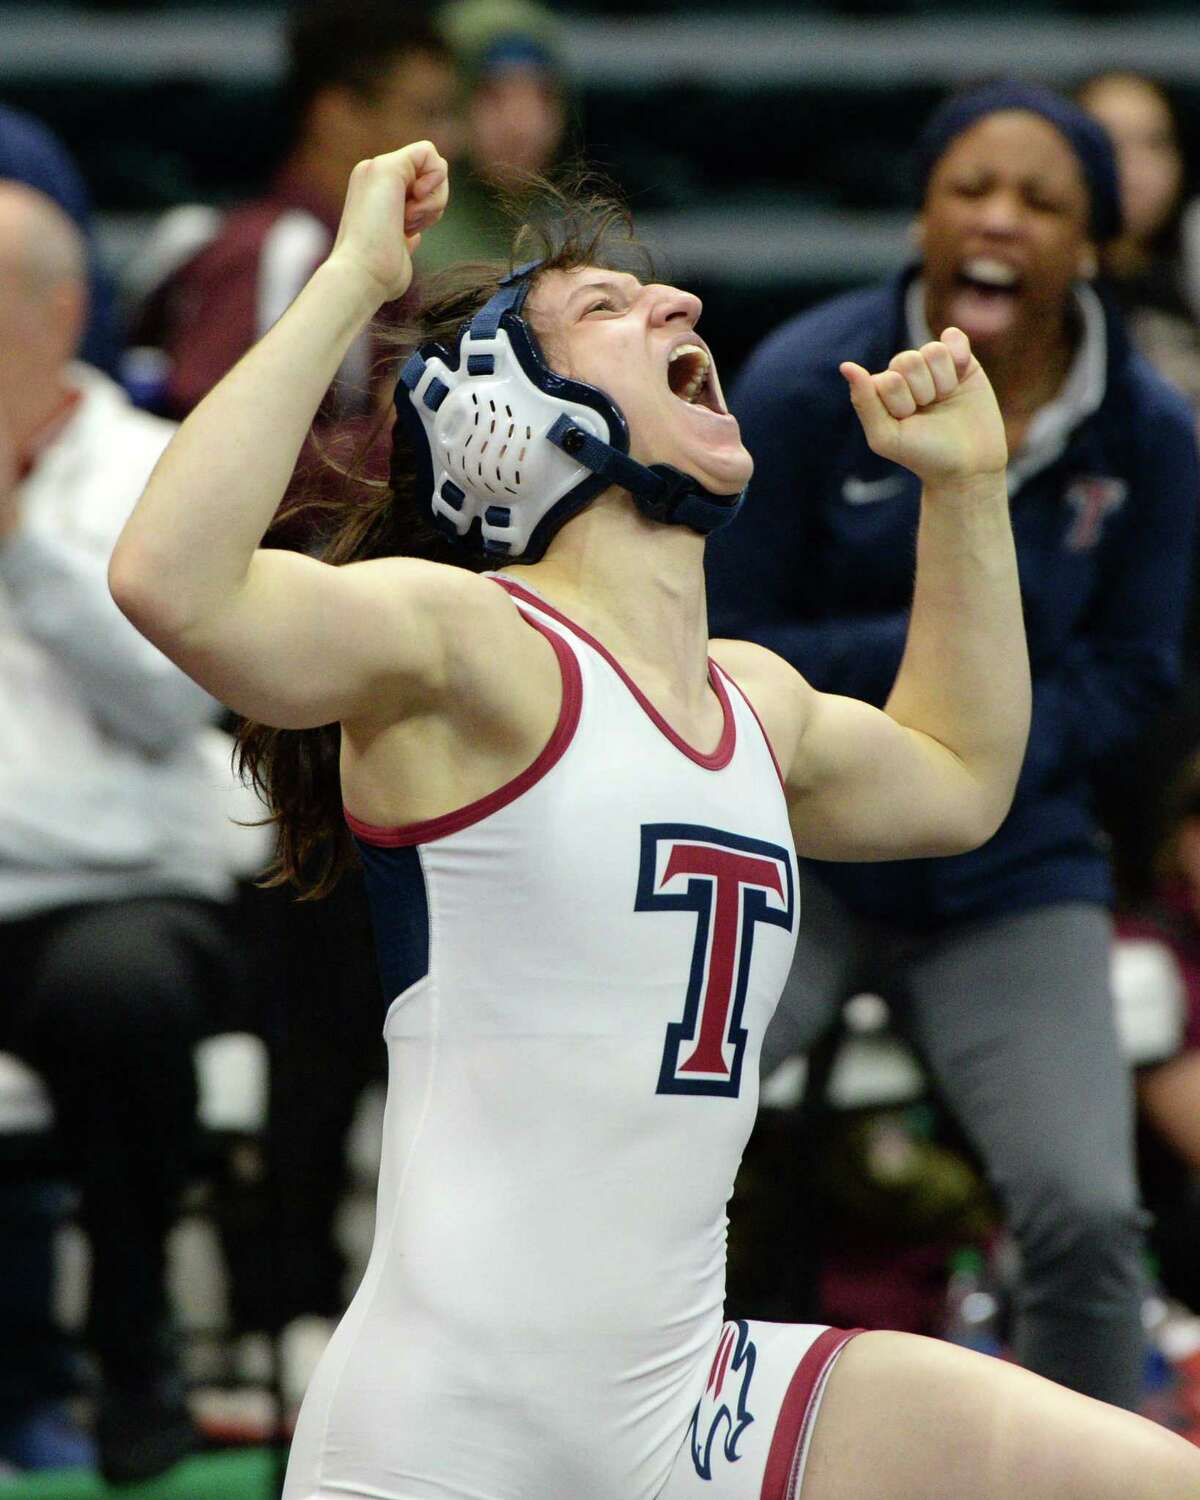 Lilly Broadrick of Katy Tompkins reacts after winning first place in the girls 119 pound weight class during the Region III 6-A UIL Wrestling Championships on Saturday February 15, 2020 at the Leonard Merrell Center, Katy, TX.